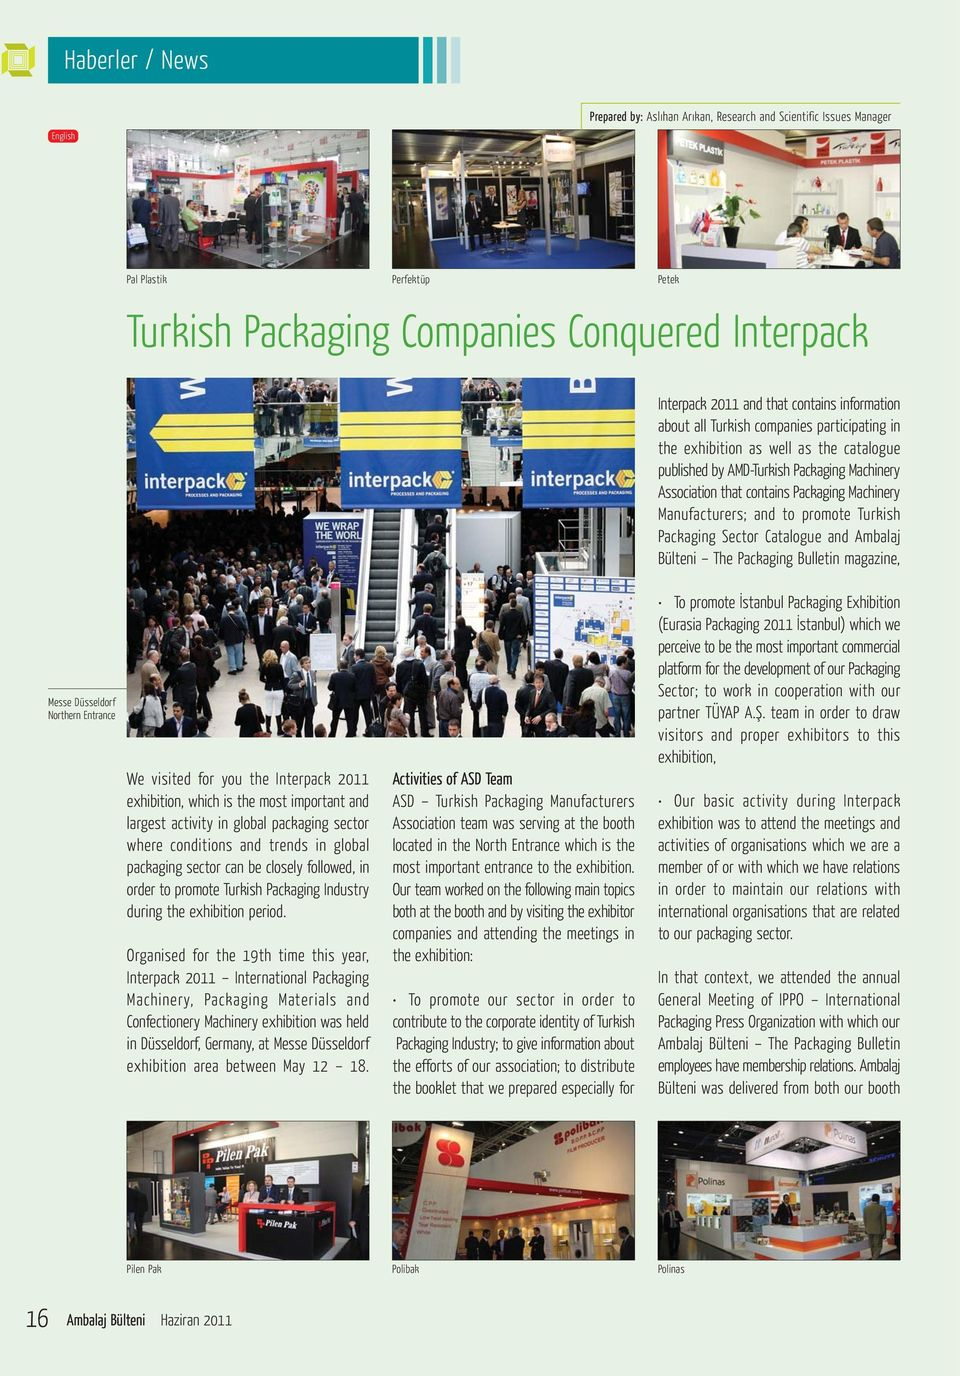 Manufacturers; and to promote Turkish Packaging Sector Catalogue and Ambalaj Bülteni The Packaging Bulletin magazine, Messe Düsseldorf Northern Entrance We visited for you the Interpack 2011